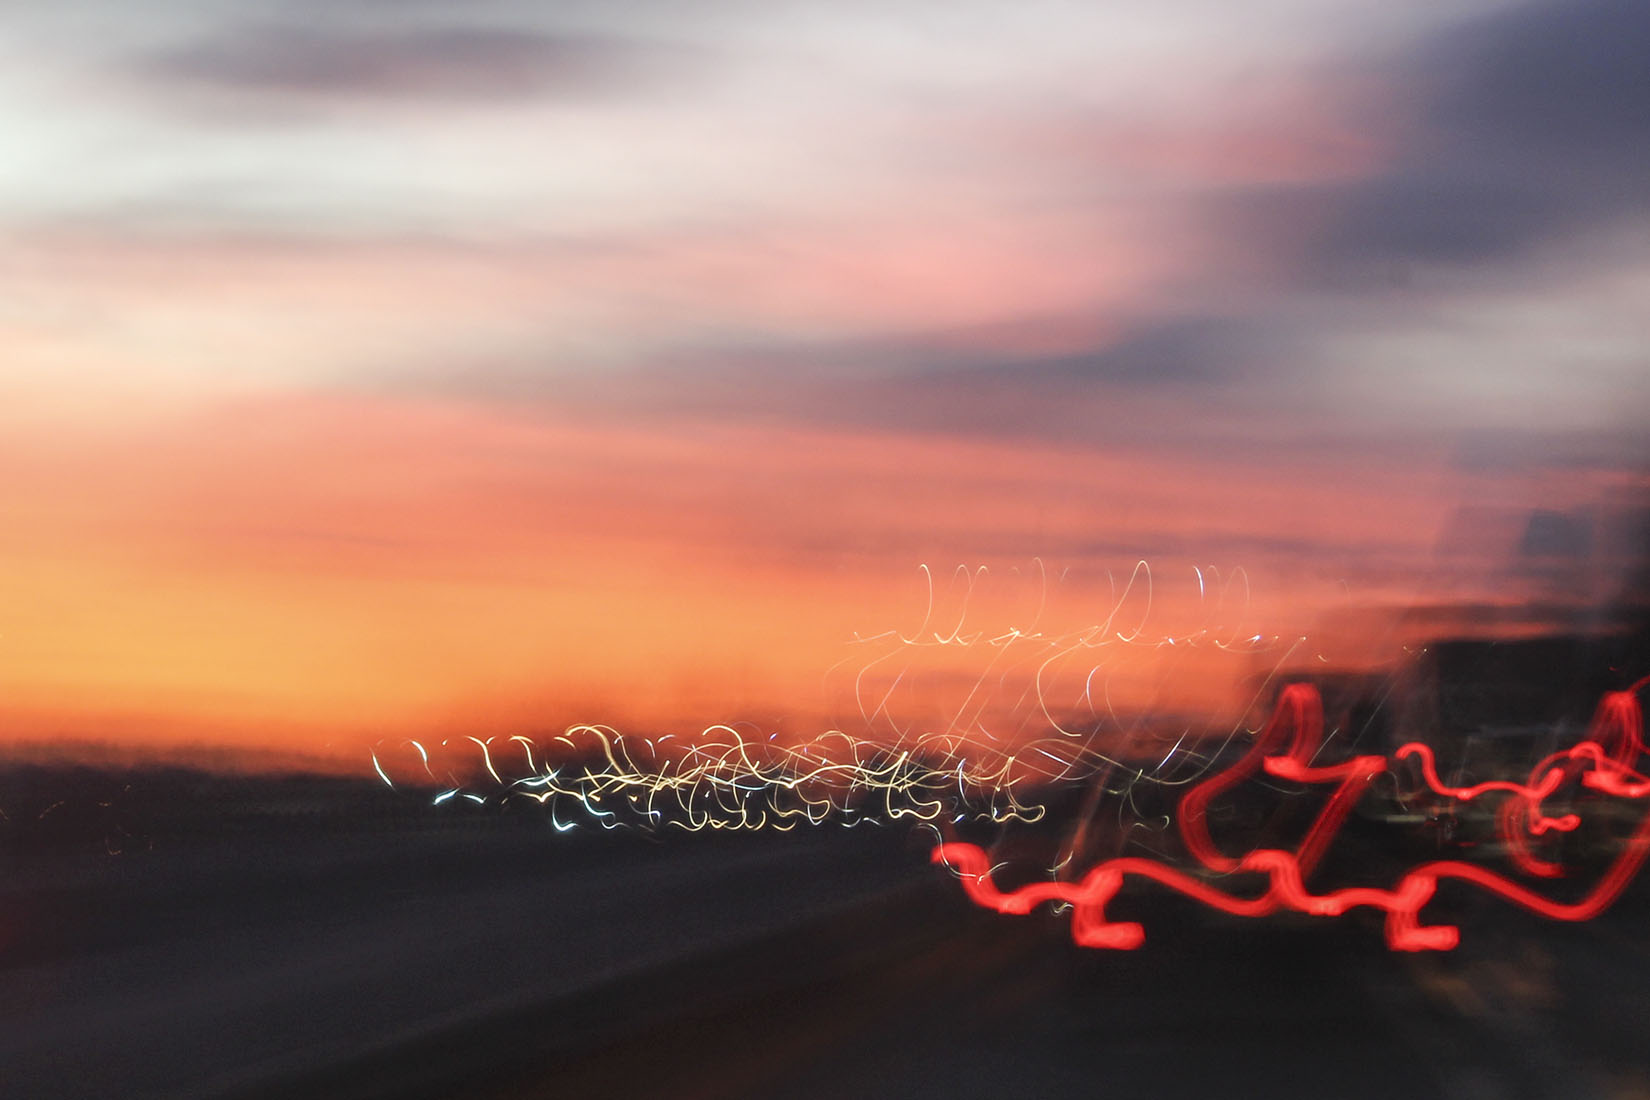 Light painting, sunset, road, movement